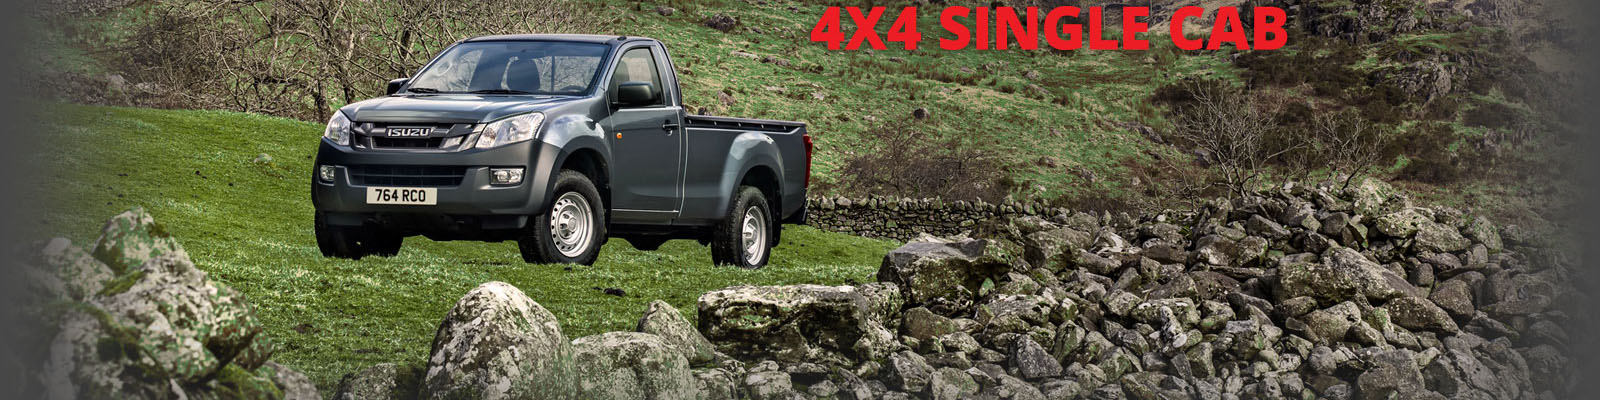 Single Cab 2012 on